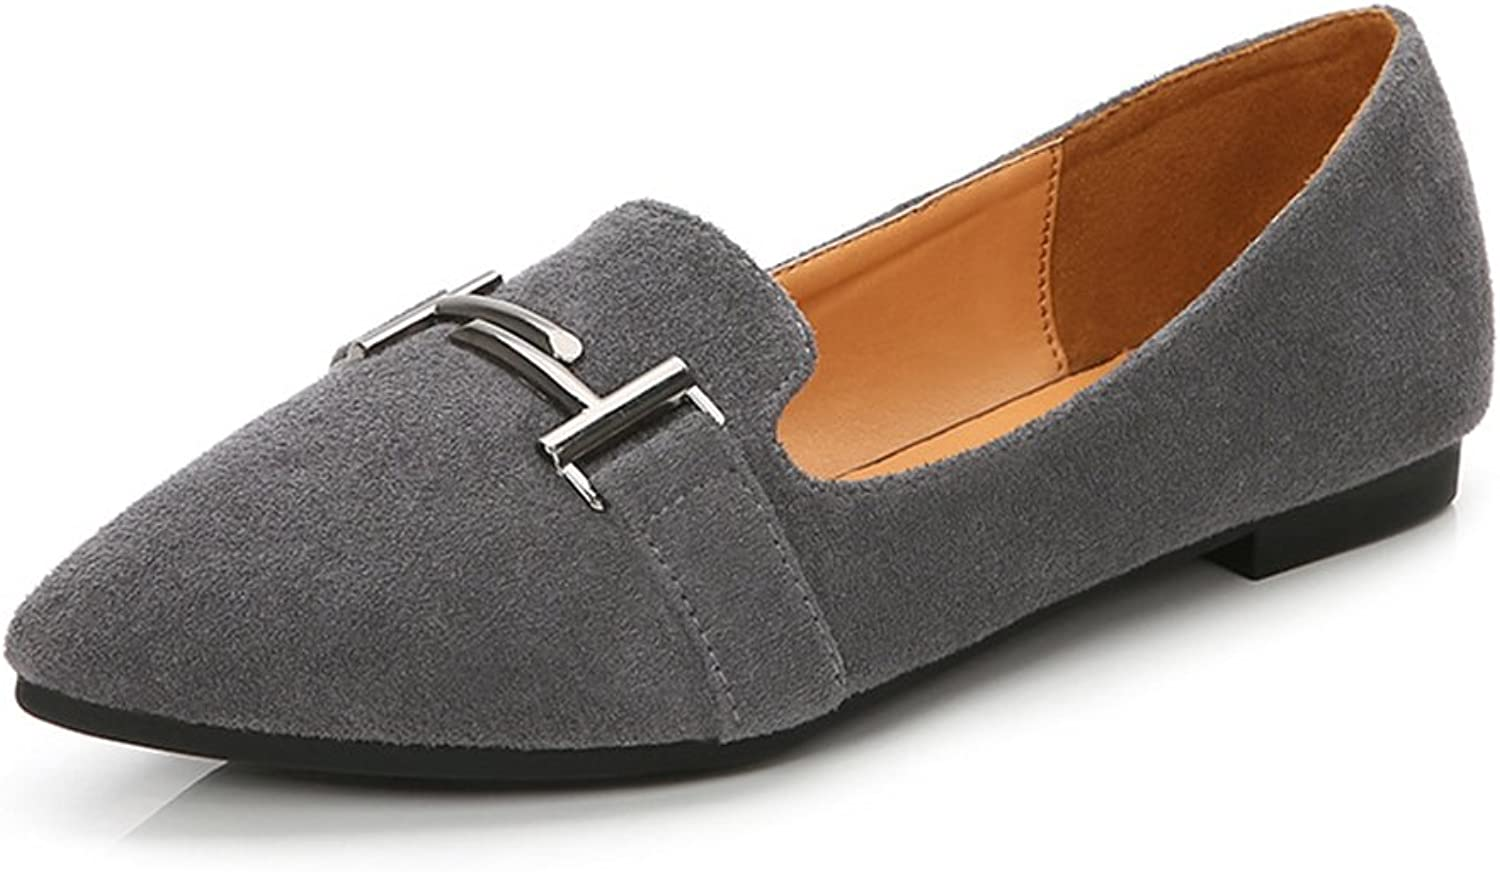 Giles Jones Women's Flats Suede shoes Anti Slip On Loafers Soft Comfort